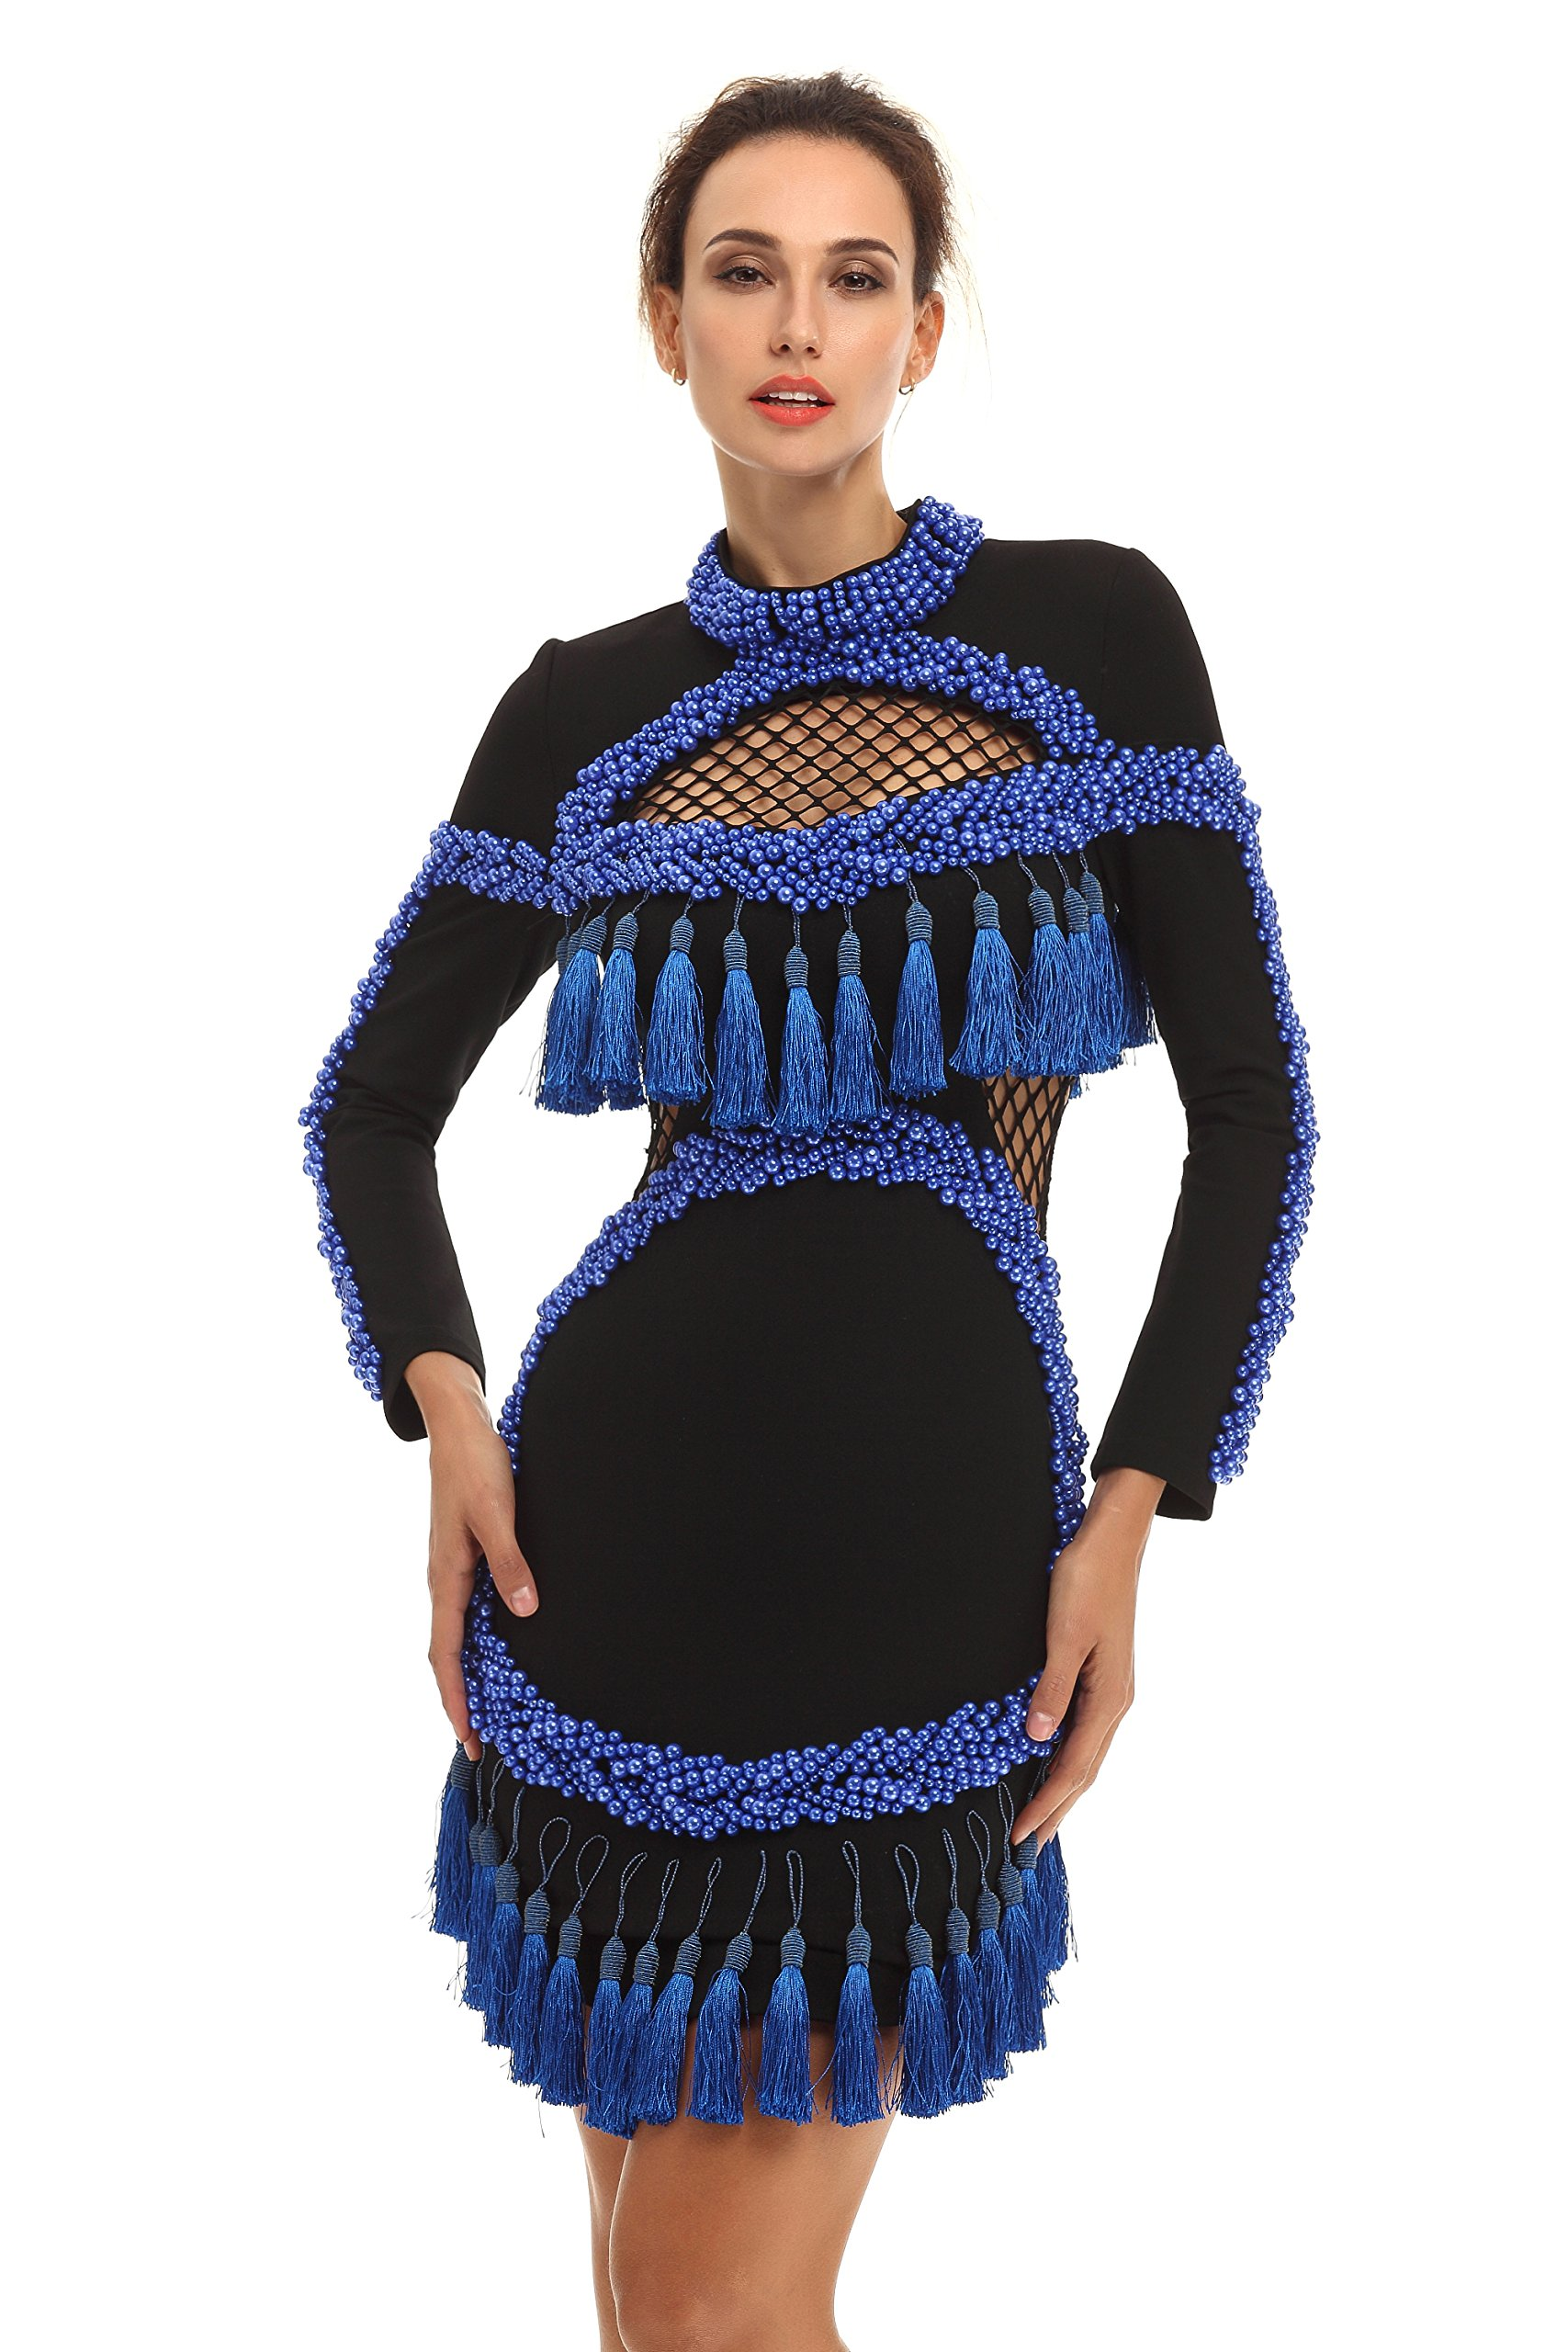 Whoinshop Women's Beaded and Tasseled High Neck Hollow-out Long Sleeve Mini Club Dress Blue S